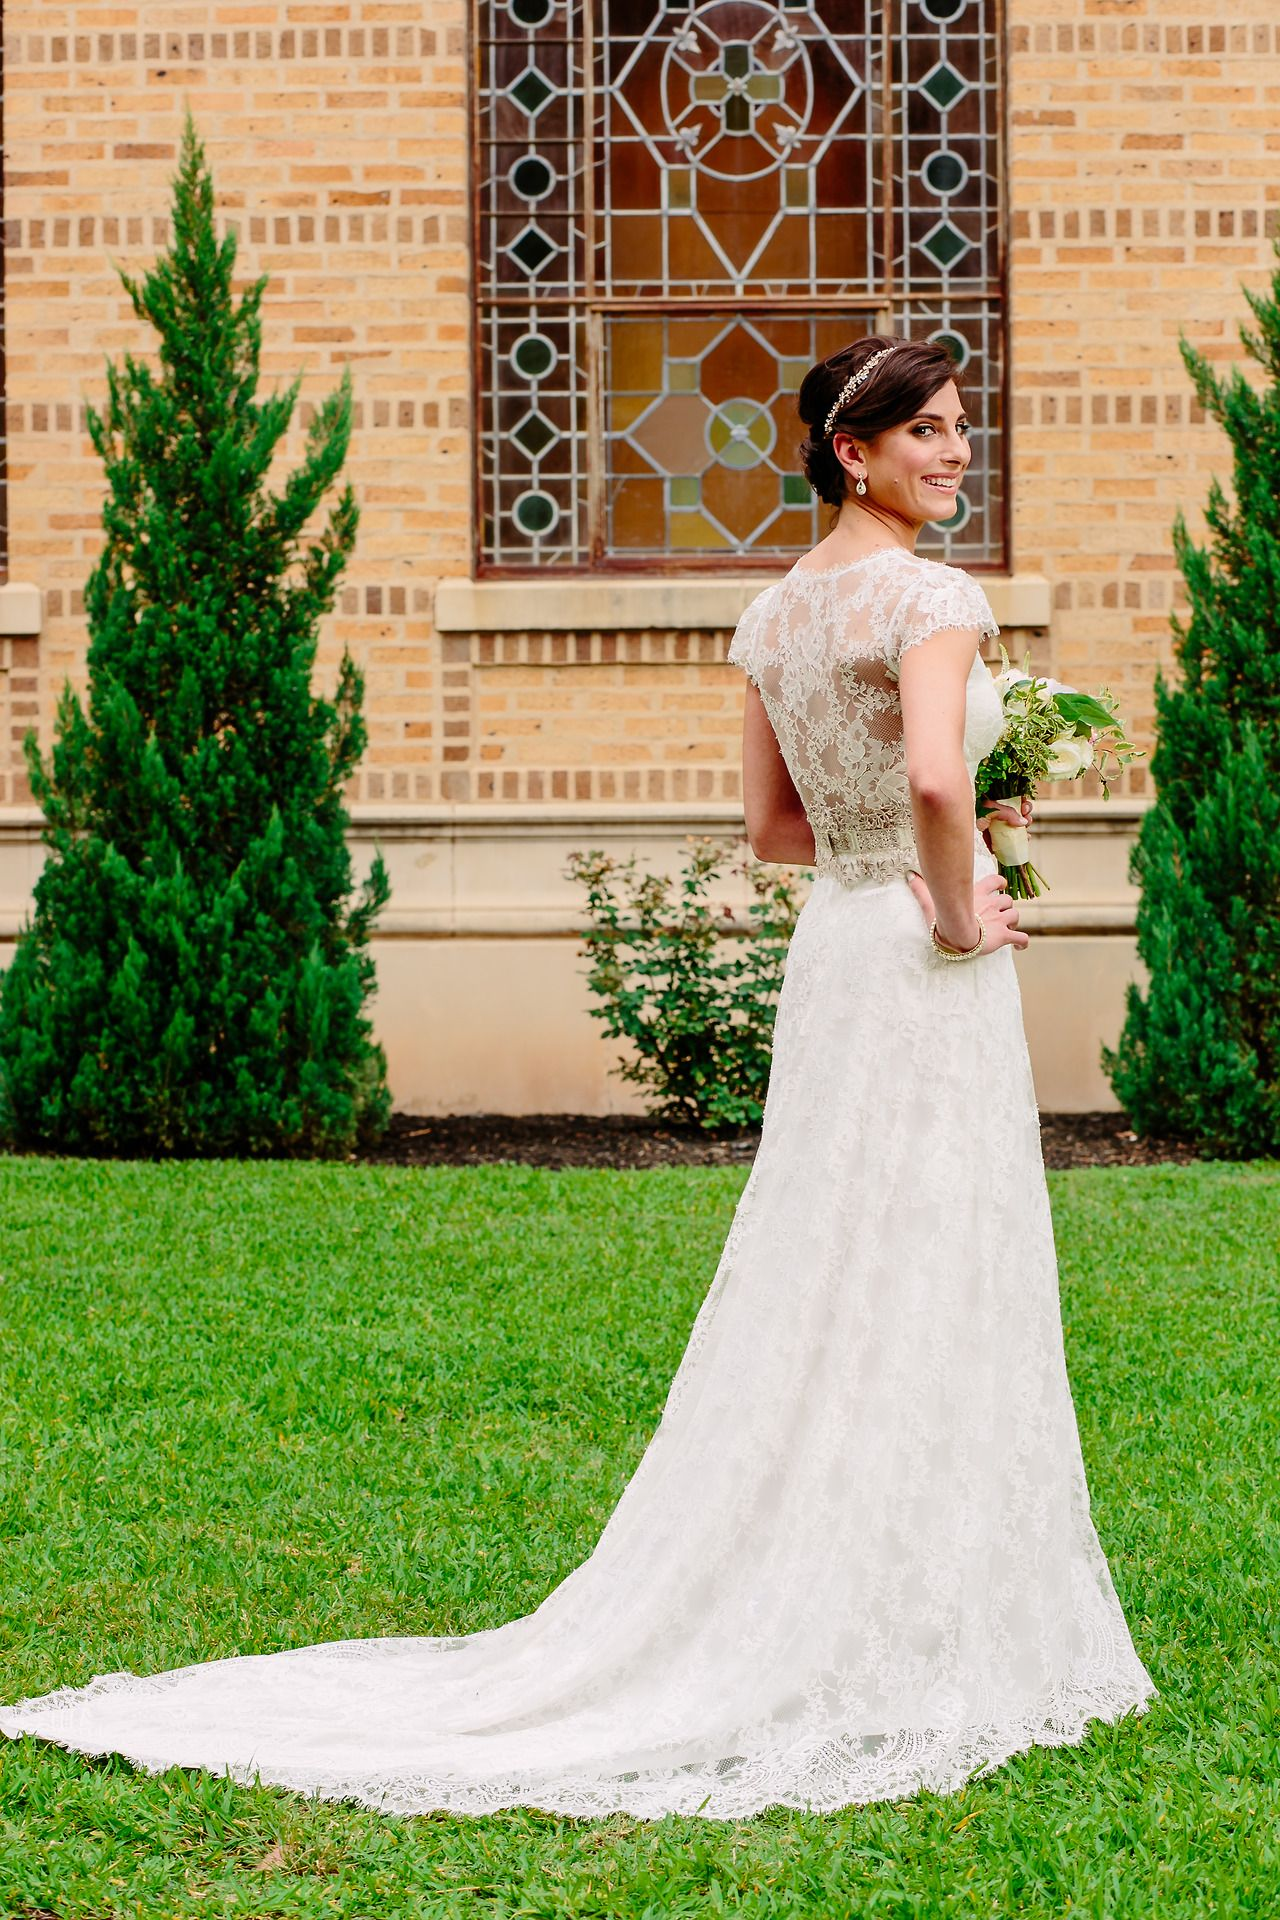 """Stunning real bride Tatiana in the Claire Pettibone 'Brigitte' wedding dress (with an extended train) from the Claire Pettibone Flagship Salon / #TheCastle in Los Angeles   """"The wedding dress was absolutely perfect!"""" - Tatiana http://www.clairepettibone.com/brigitte"""